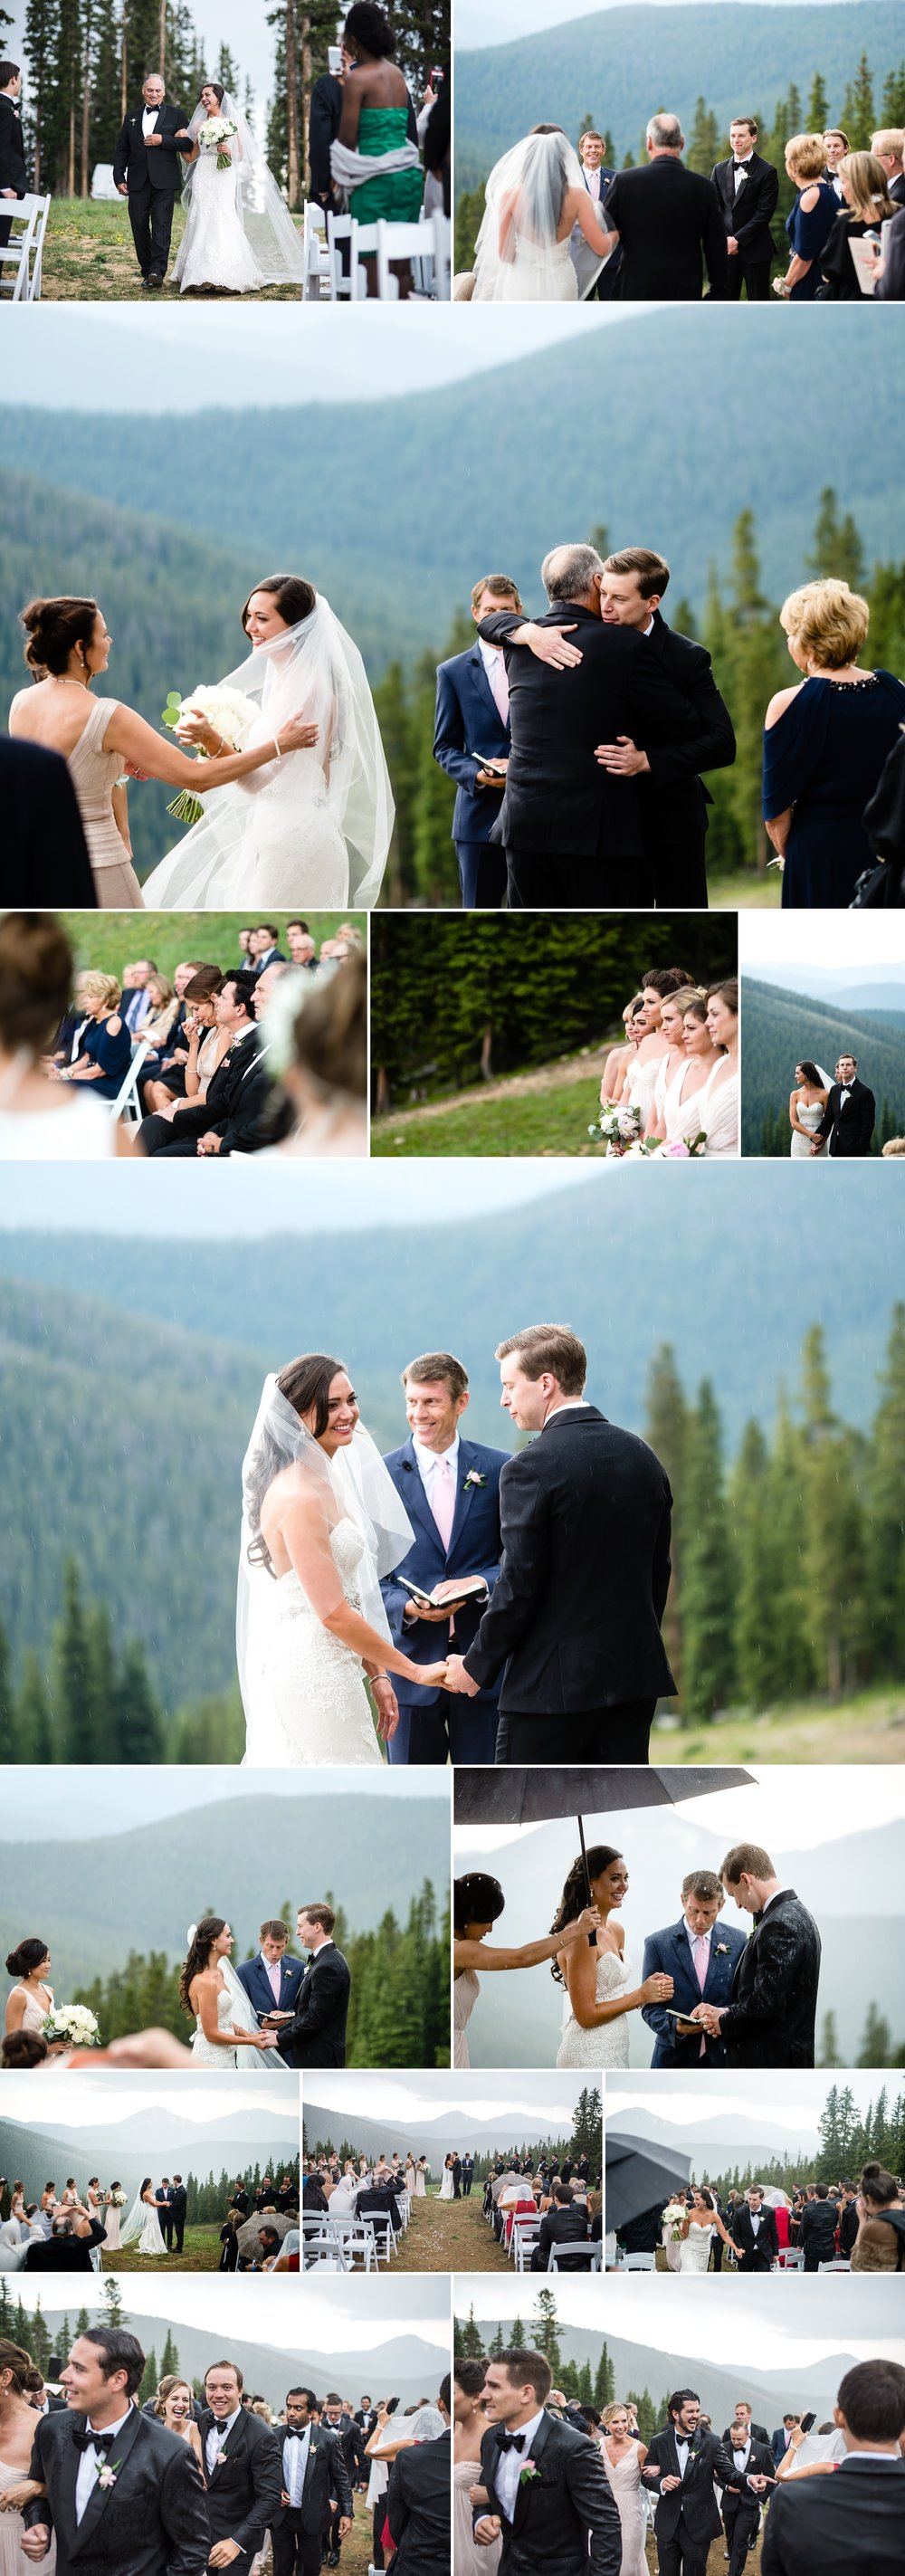 Timber Ridge Lodge Wedding Ceremony by Kate Merrill